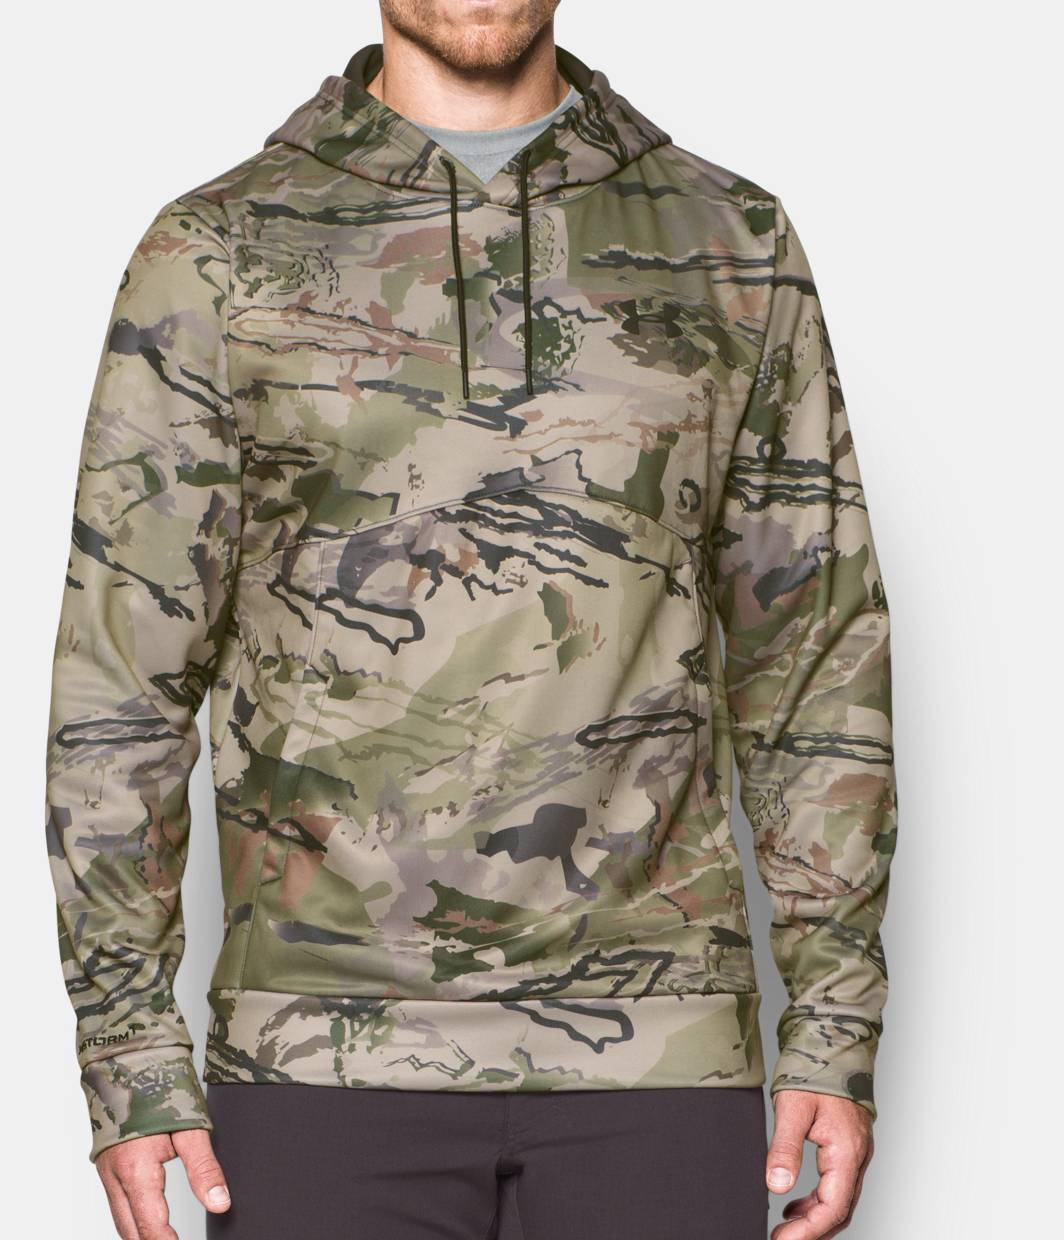 Every hunter will enjoy Legendary Whitetails collection of Camo Hoodies and Camouflage Sweatshirts. Perfect for any occasion! Show off your love of the hunt. Legendary Whitetails.